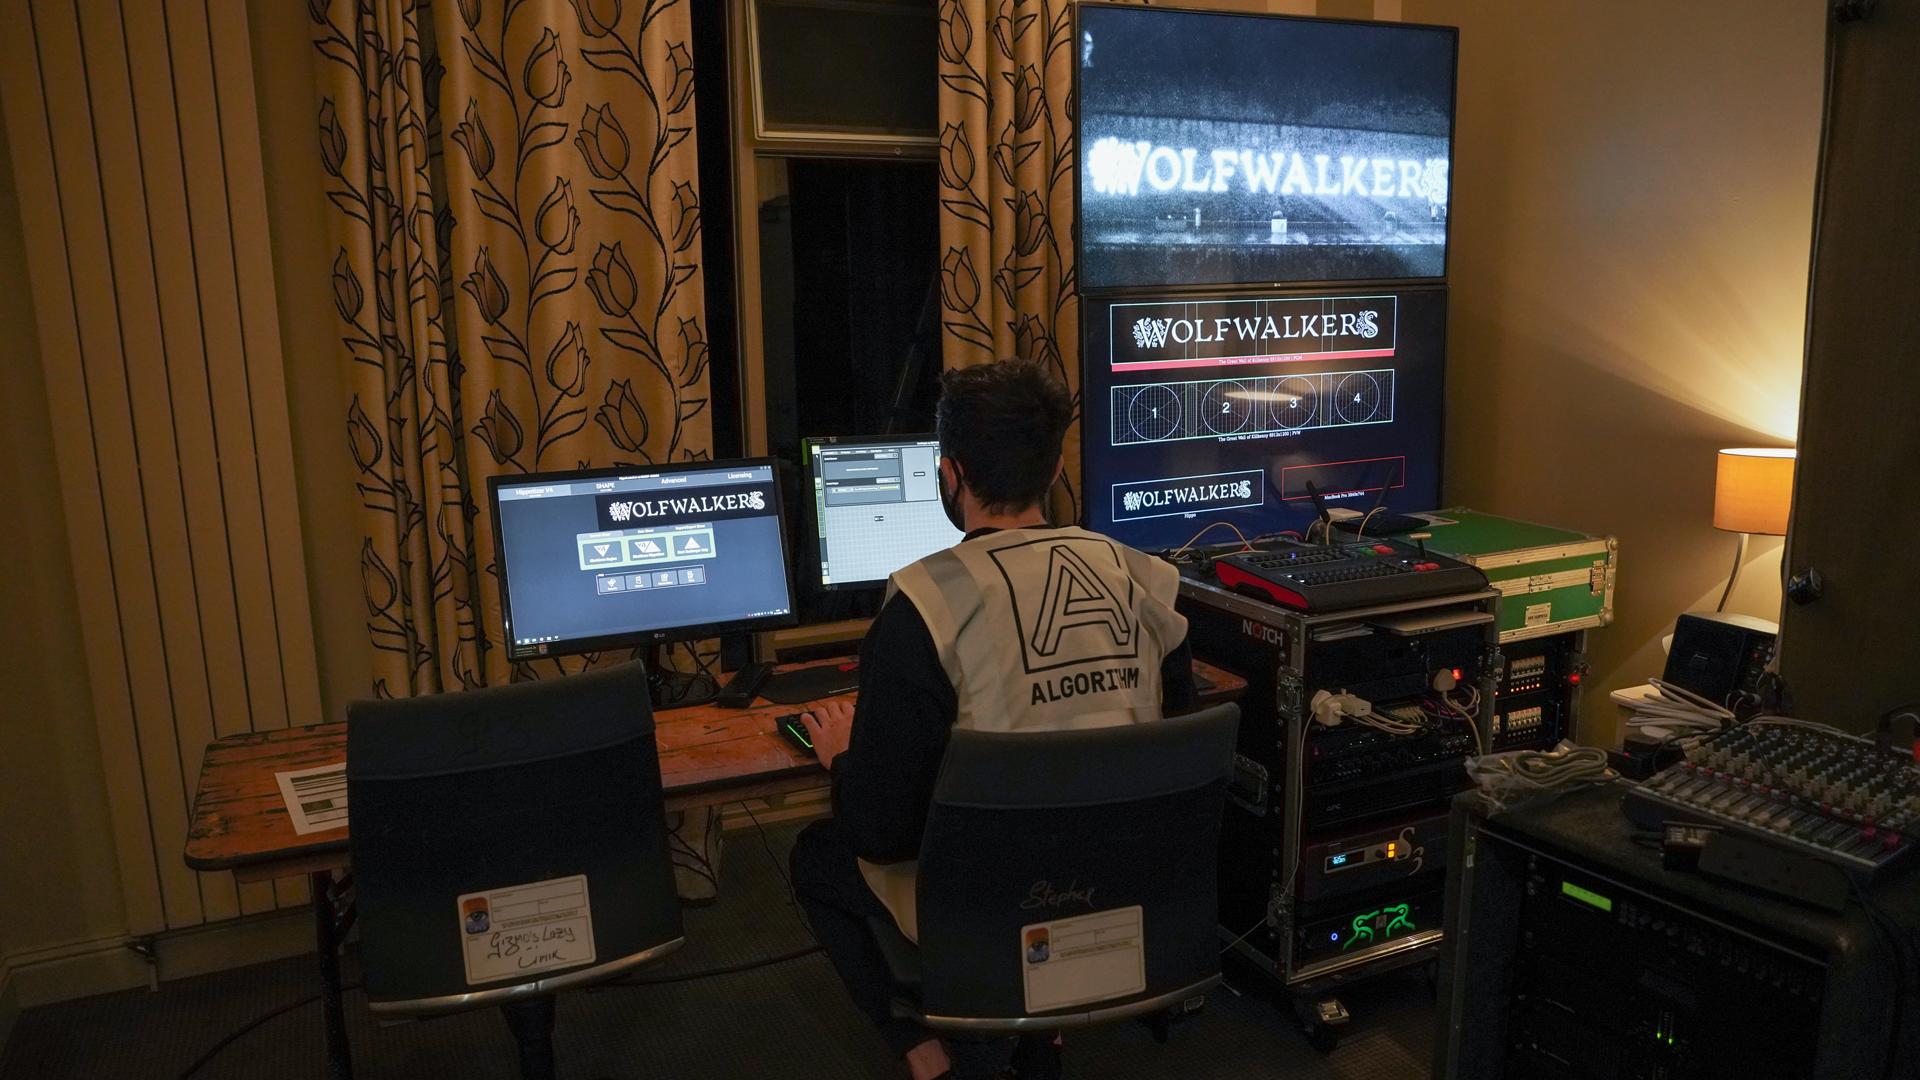 Behind the scene at Wolfwalkers HQ